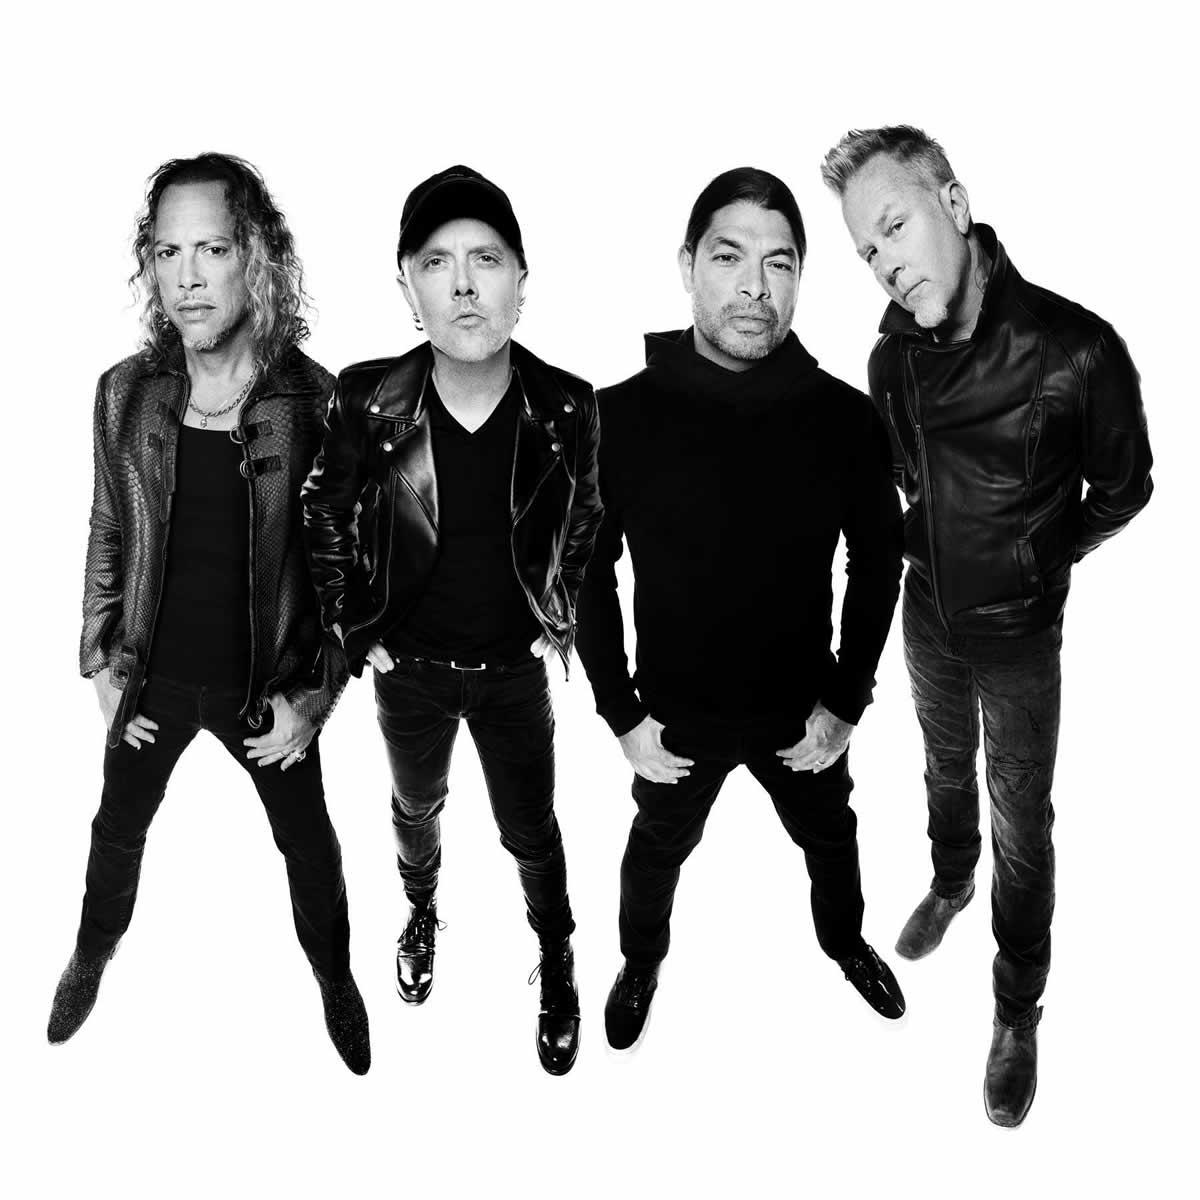 the band Metallica